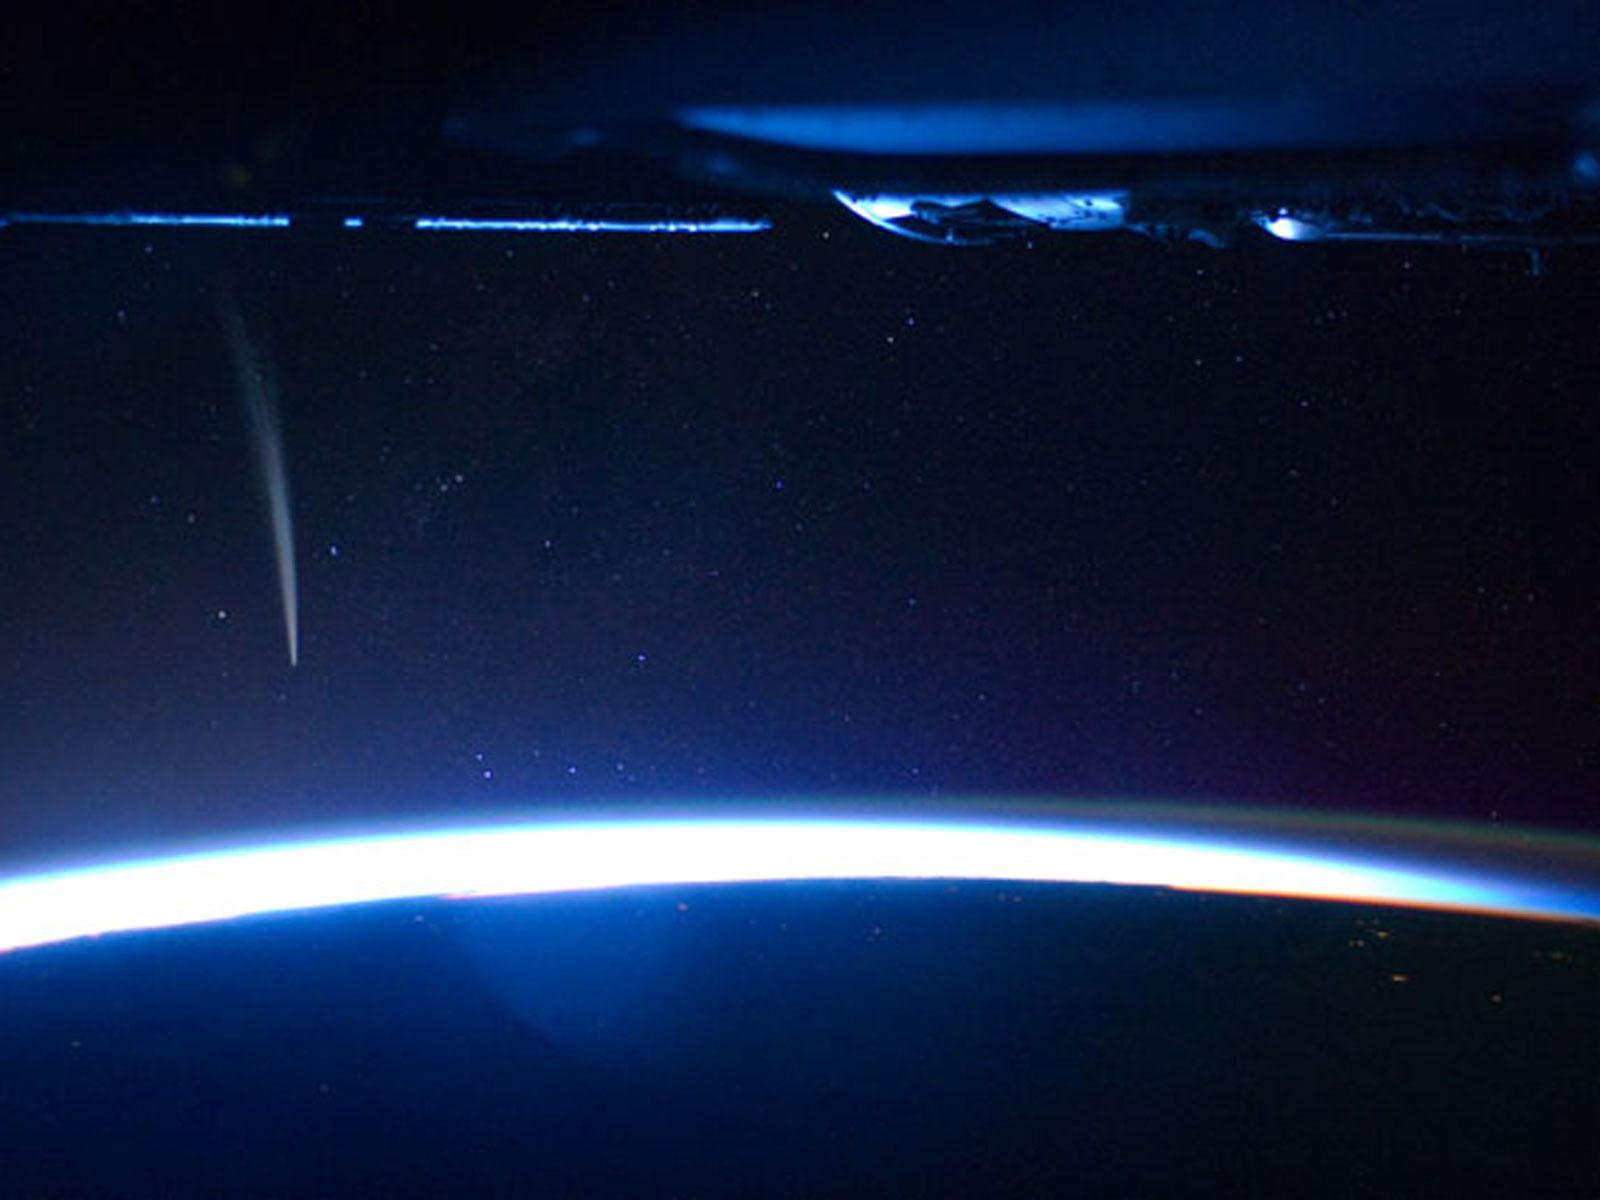 Astronaut Sees Comet Lovejoy From Space